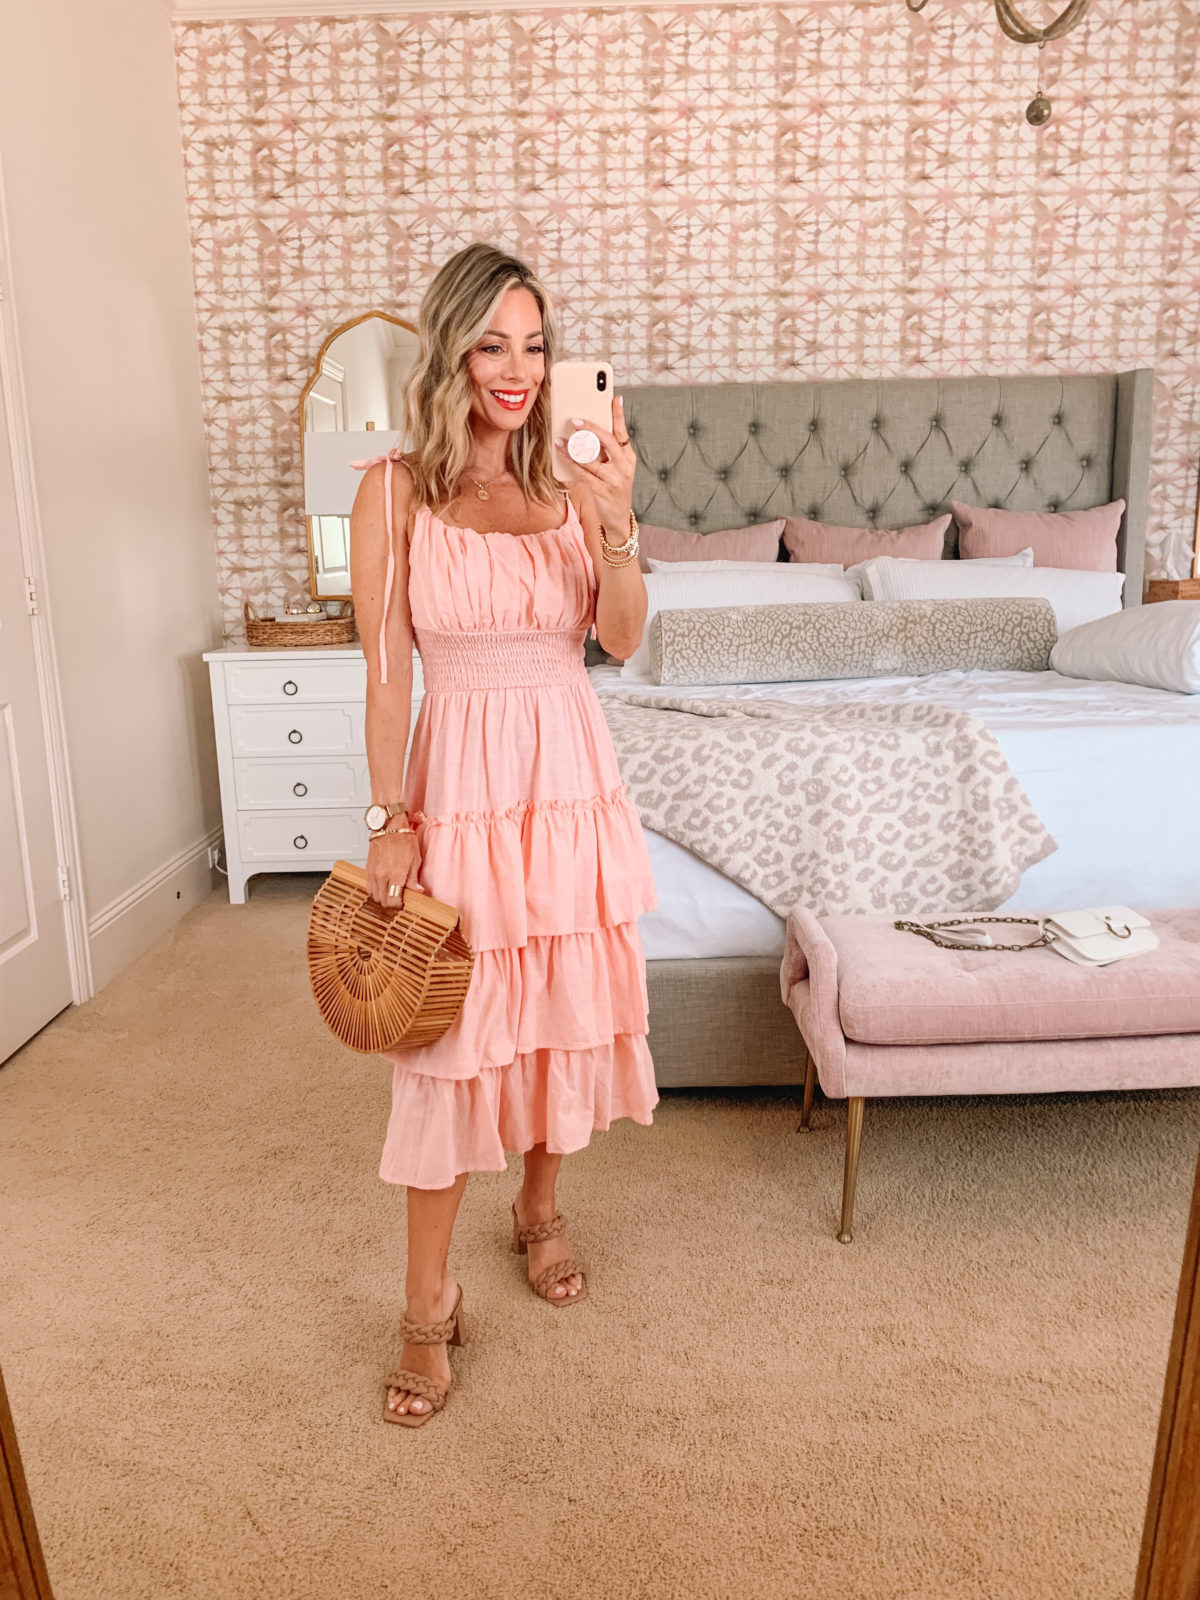 Amazon Fashion Faves, Pink Tiered Dress and Sandals with Bamboo Clutch